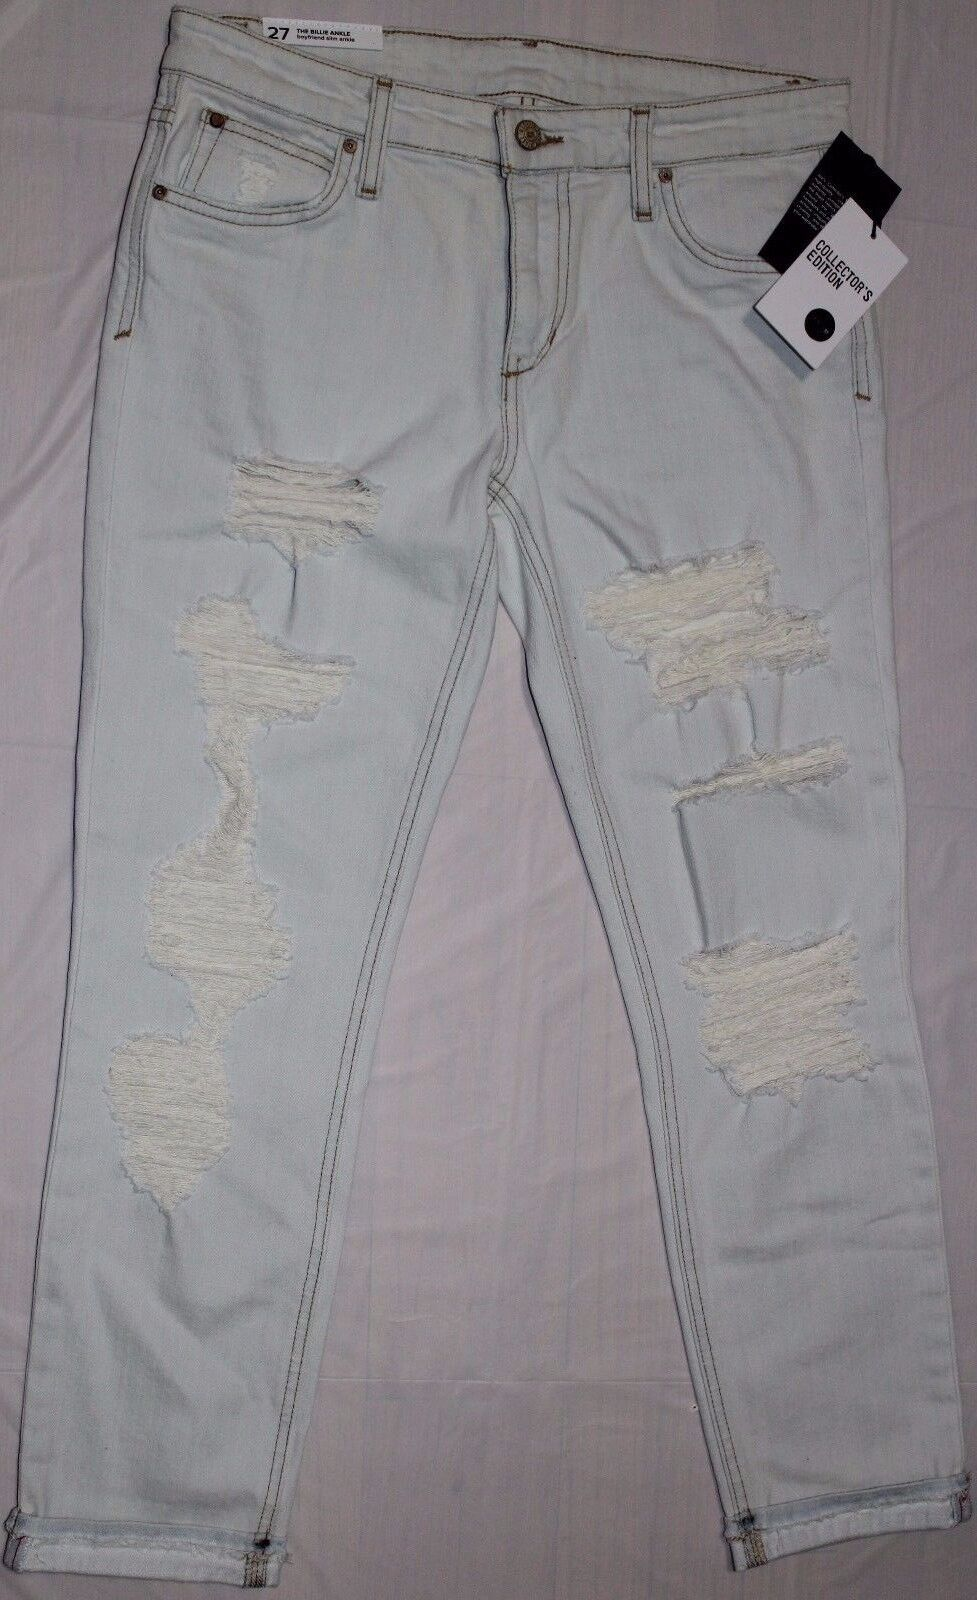 JOE'S JEANS THE BILLIE BOYFRIEND SLIM ANKLE JEANS SZ 27